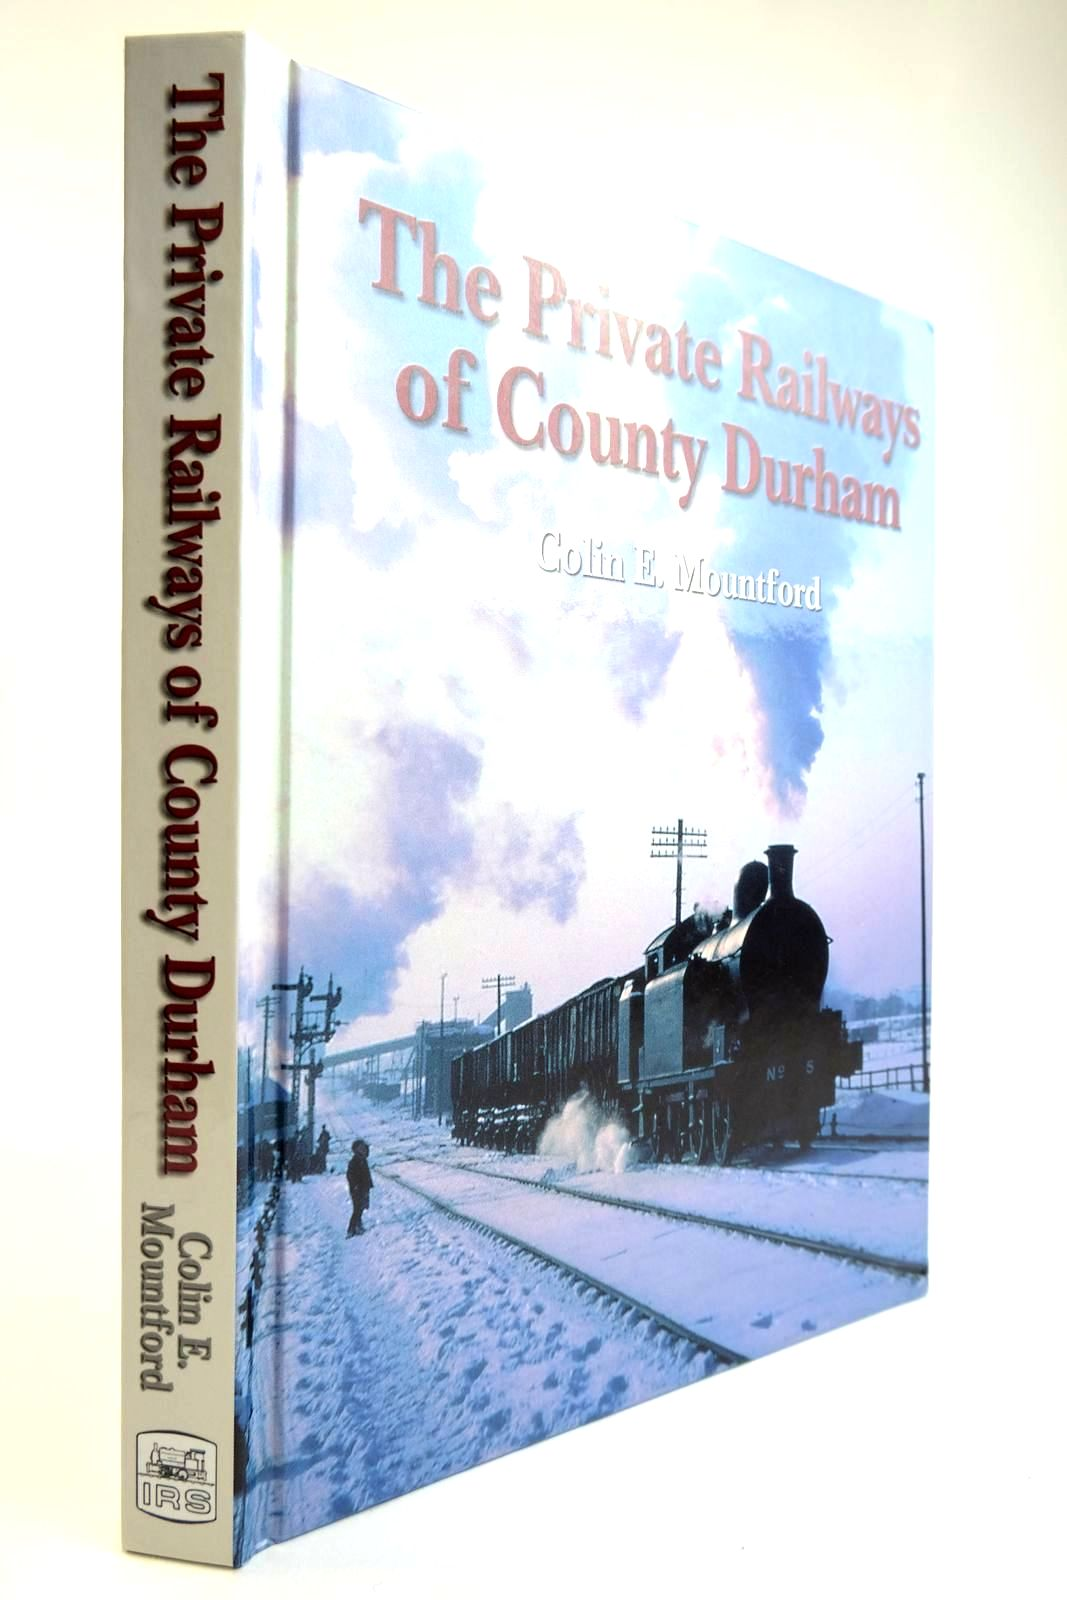 Photo of THE PRIVATE RAILWAYS OF COUNTY DURHAM